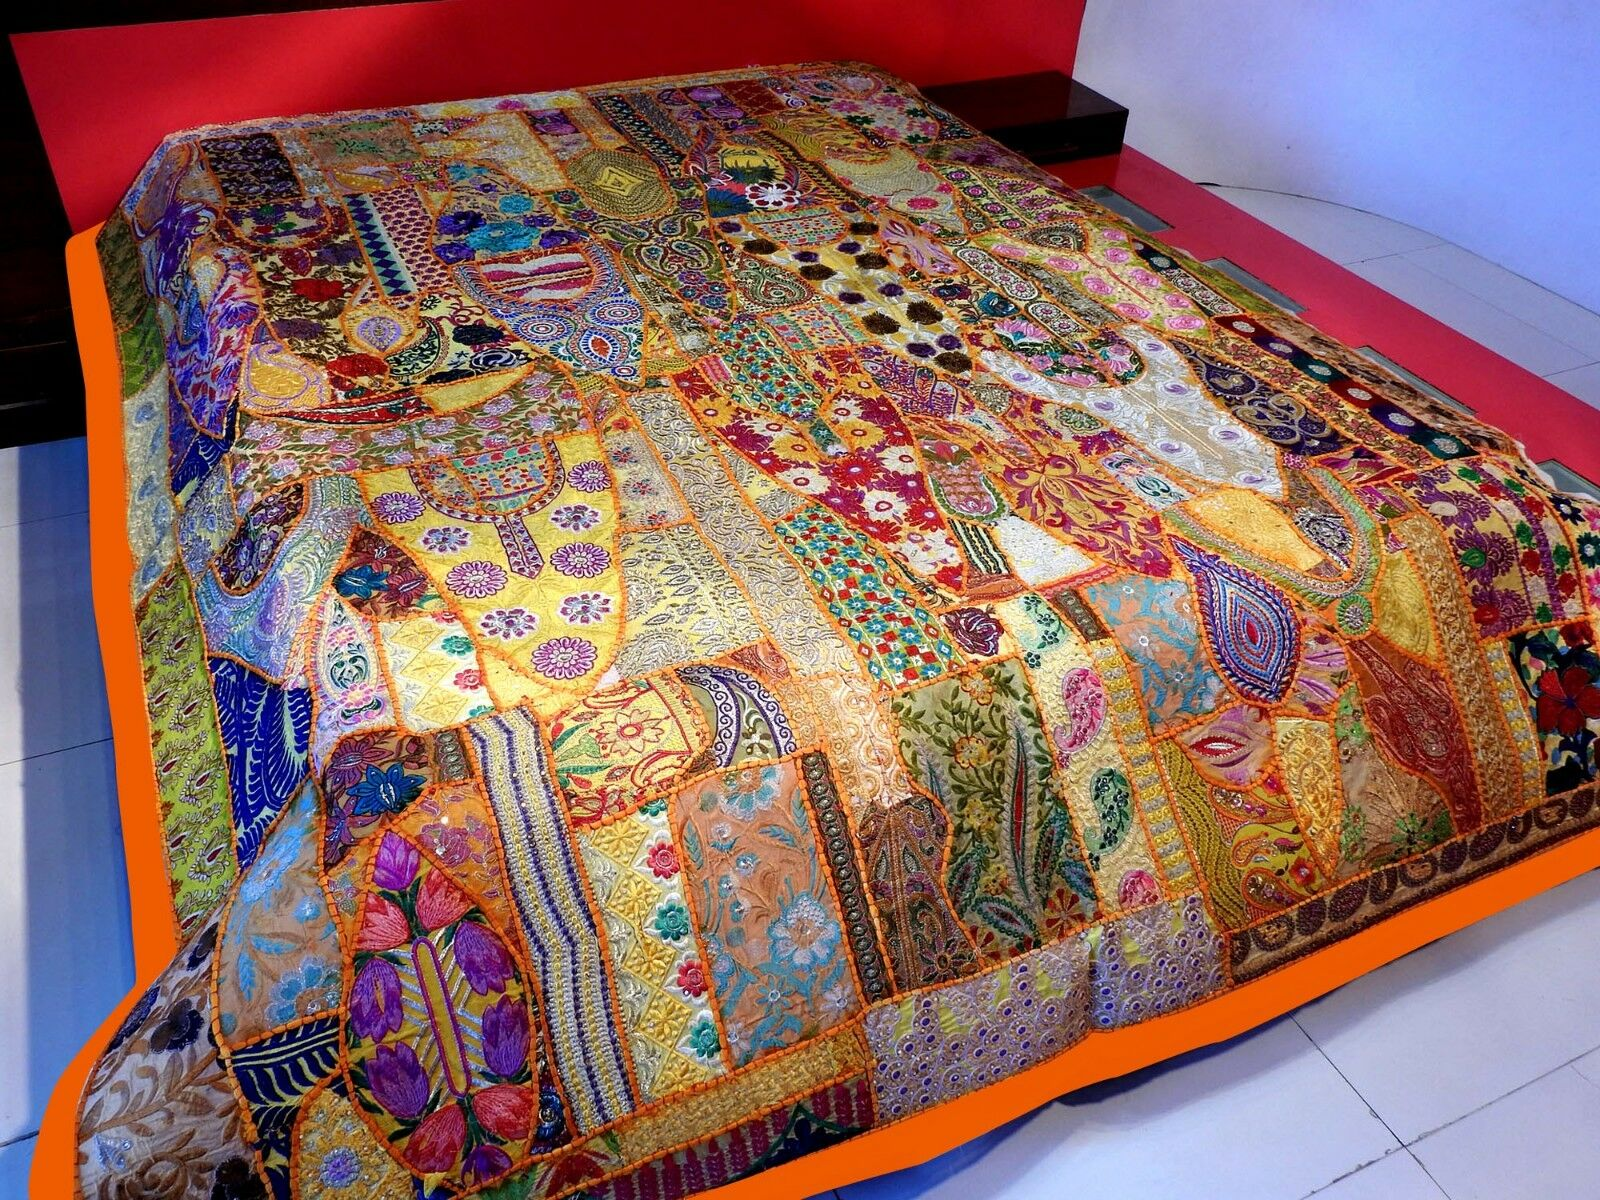 Vintage Patchwork Bedspread Hand Embroidery Bed Cover, Wall Hanging Curtain BS69